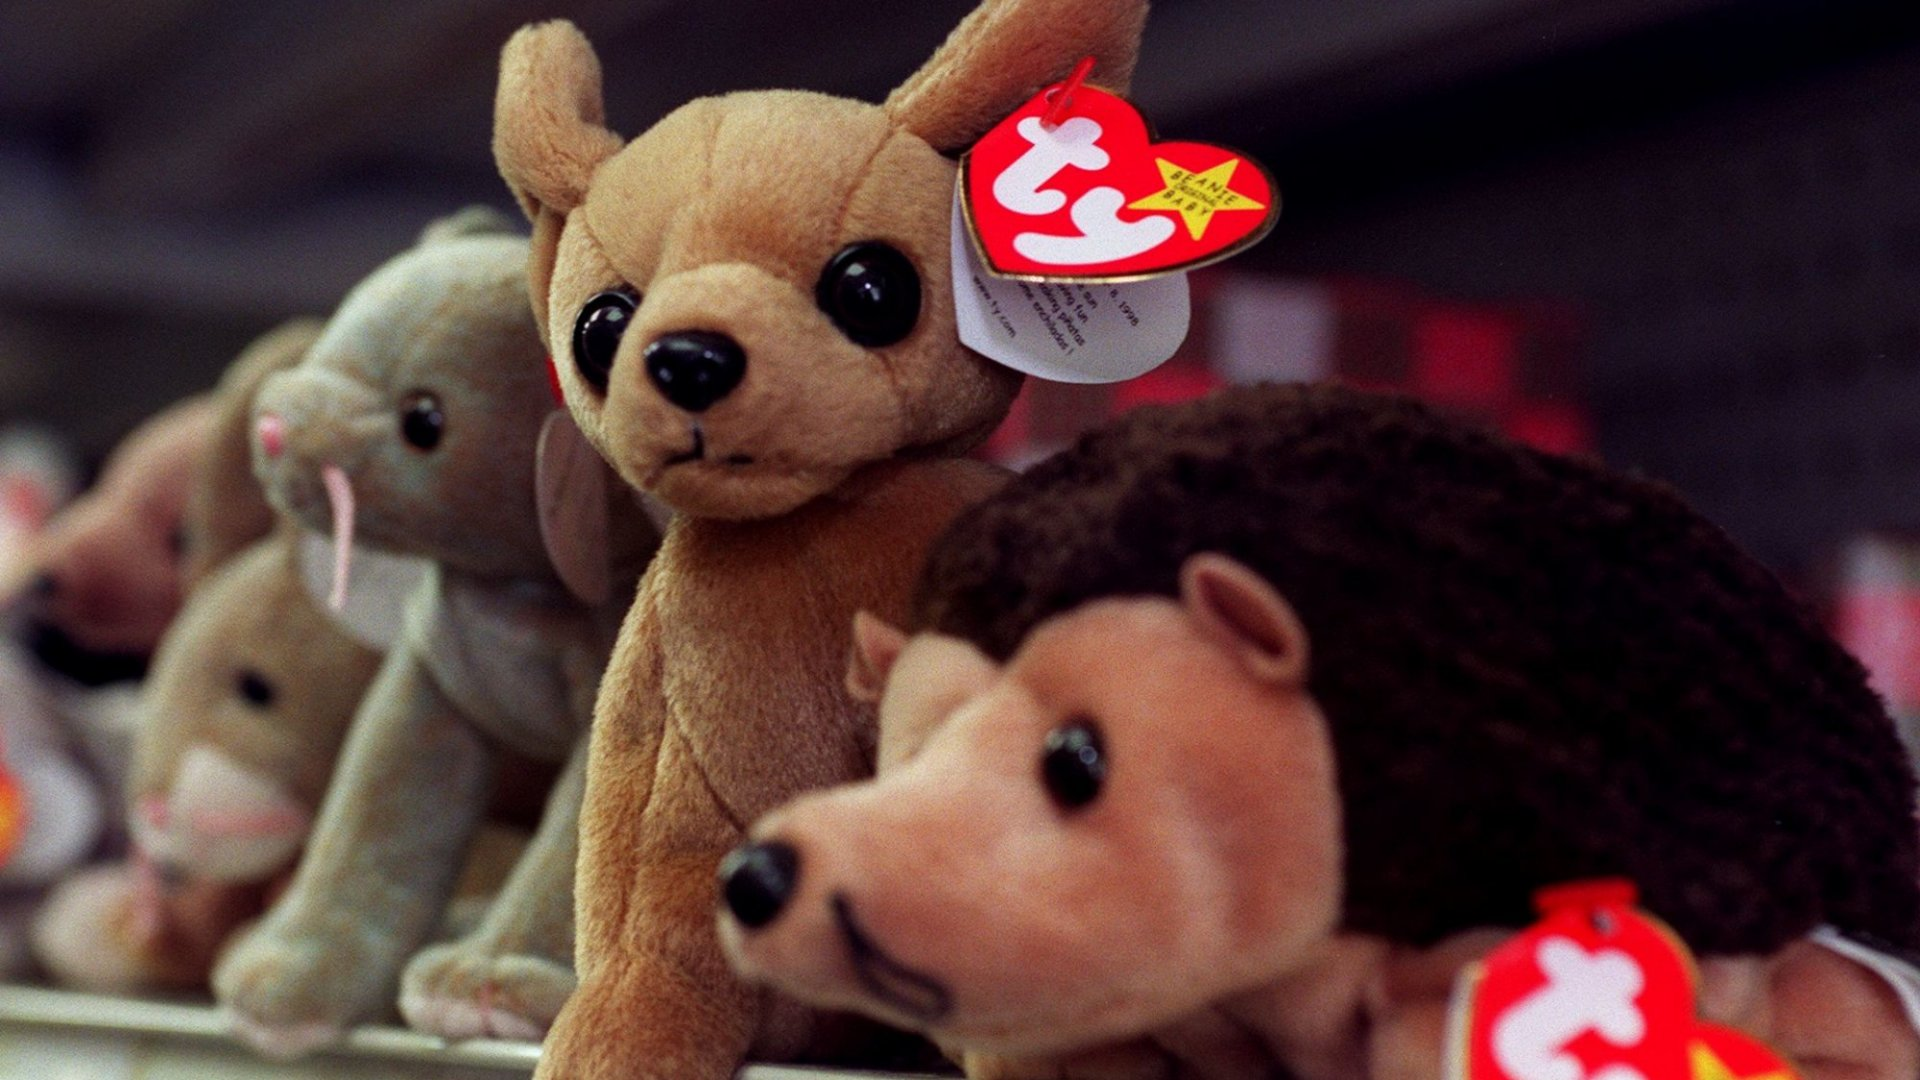 How to Run Your Business Like the Man Who Created the Beanie Baby Empire